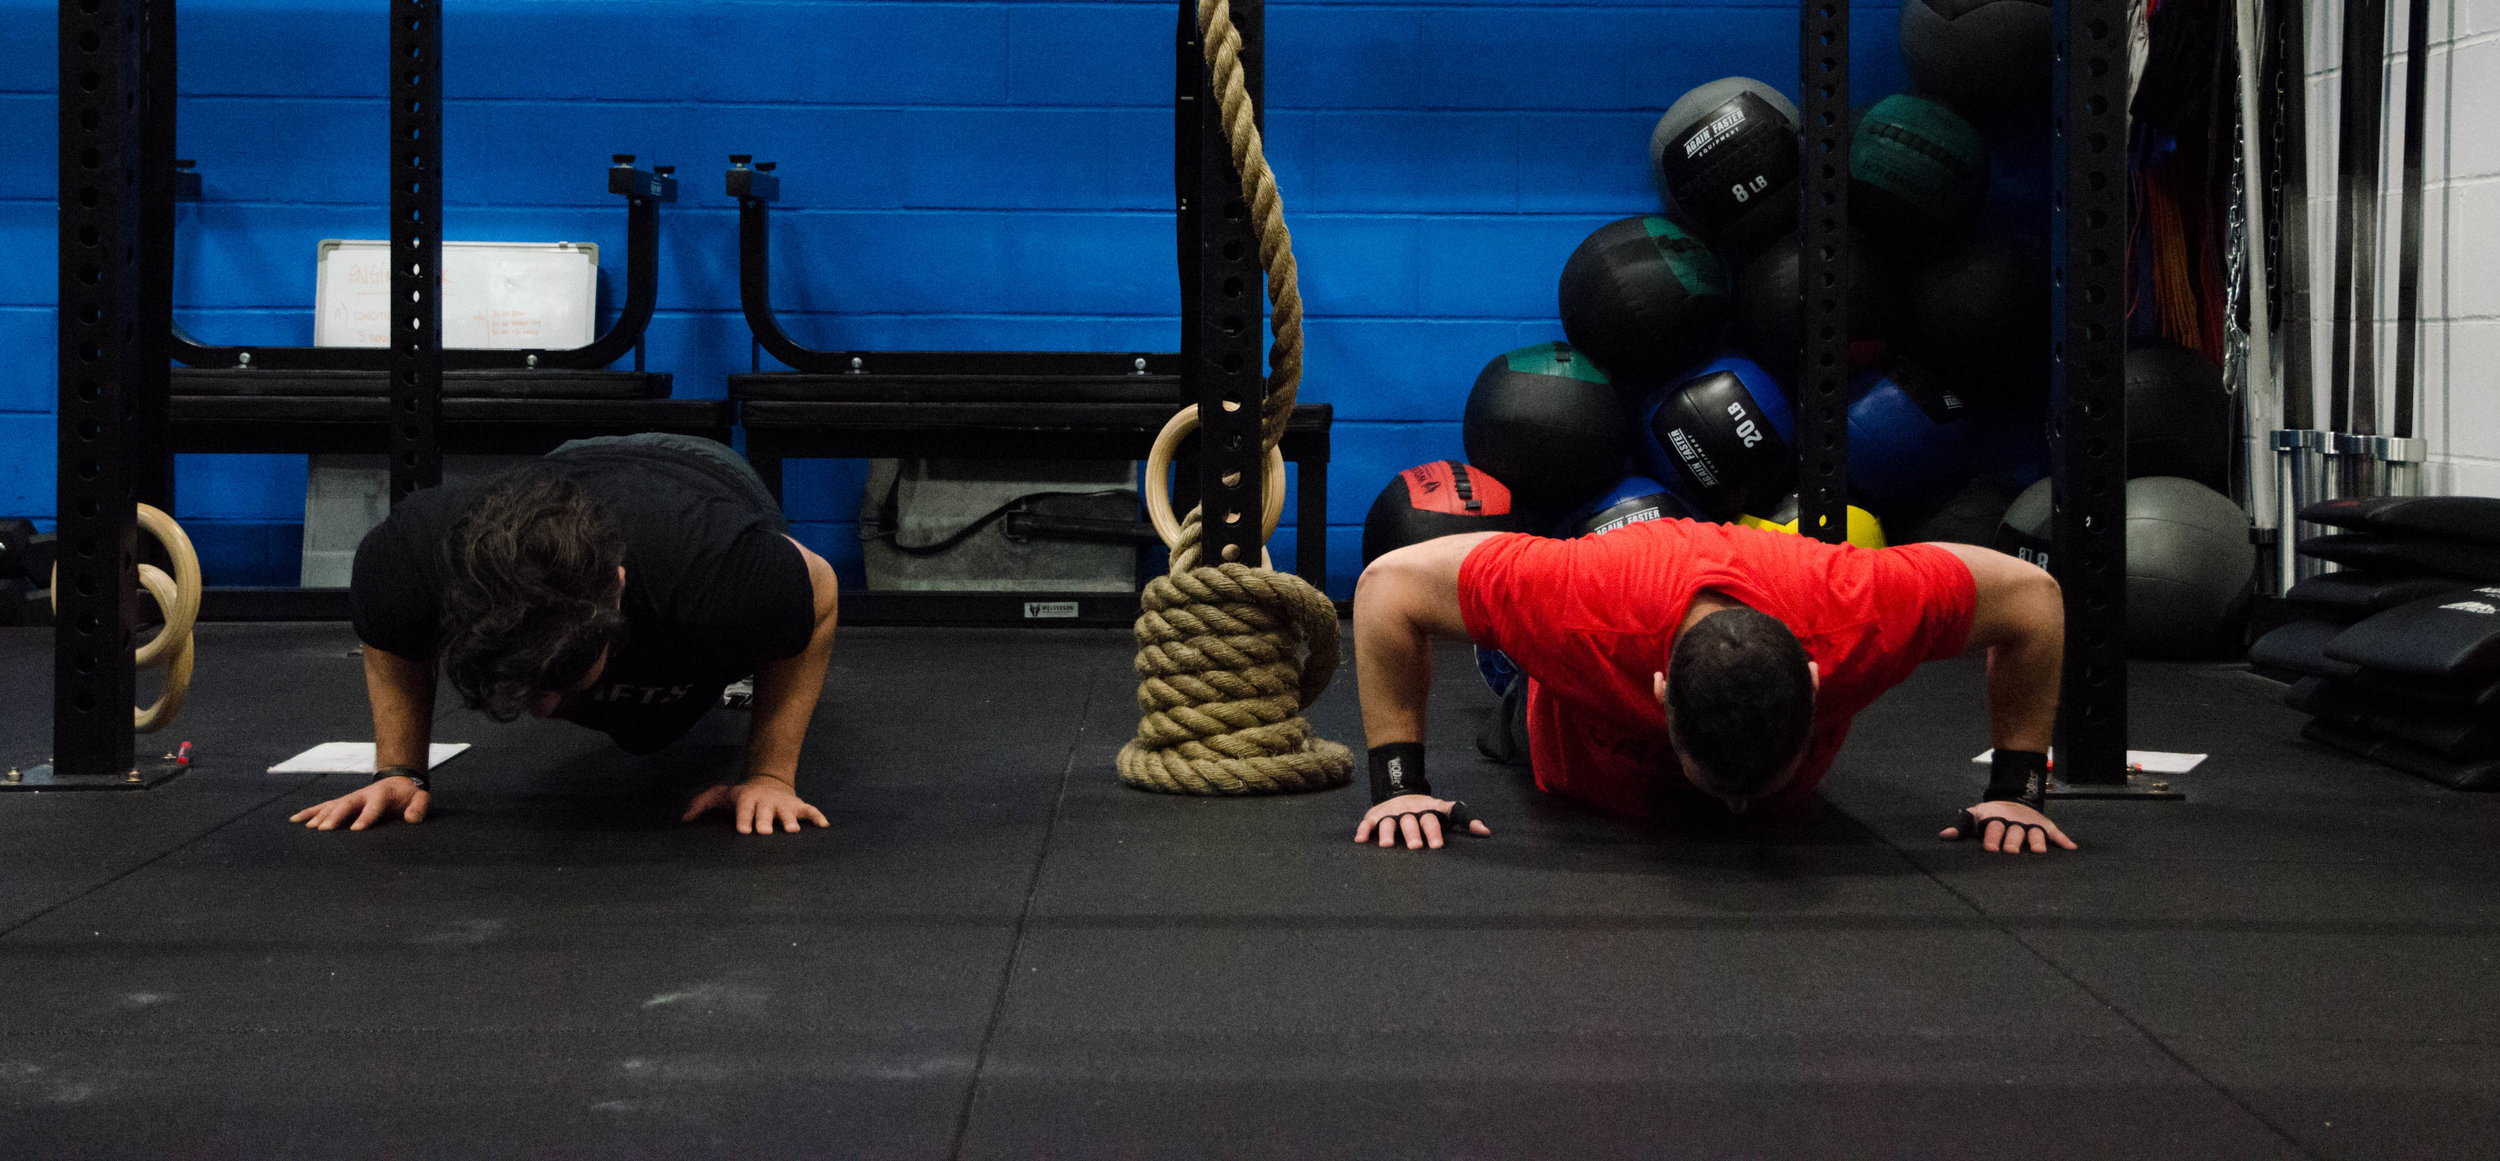 pushup-crossfit.jpg